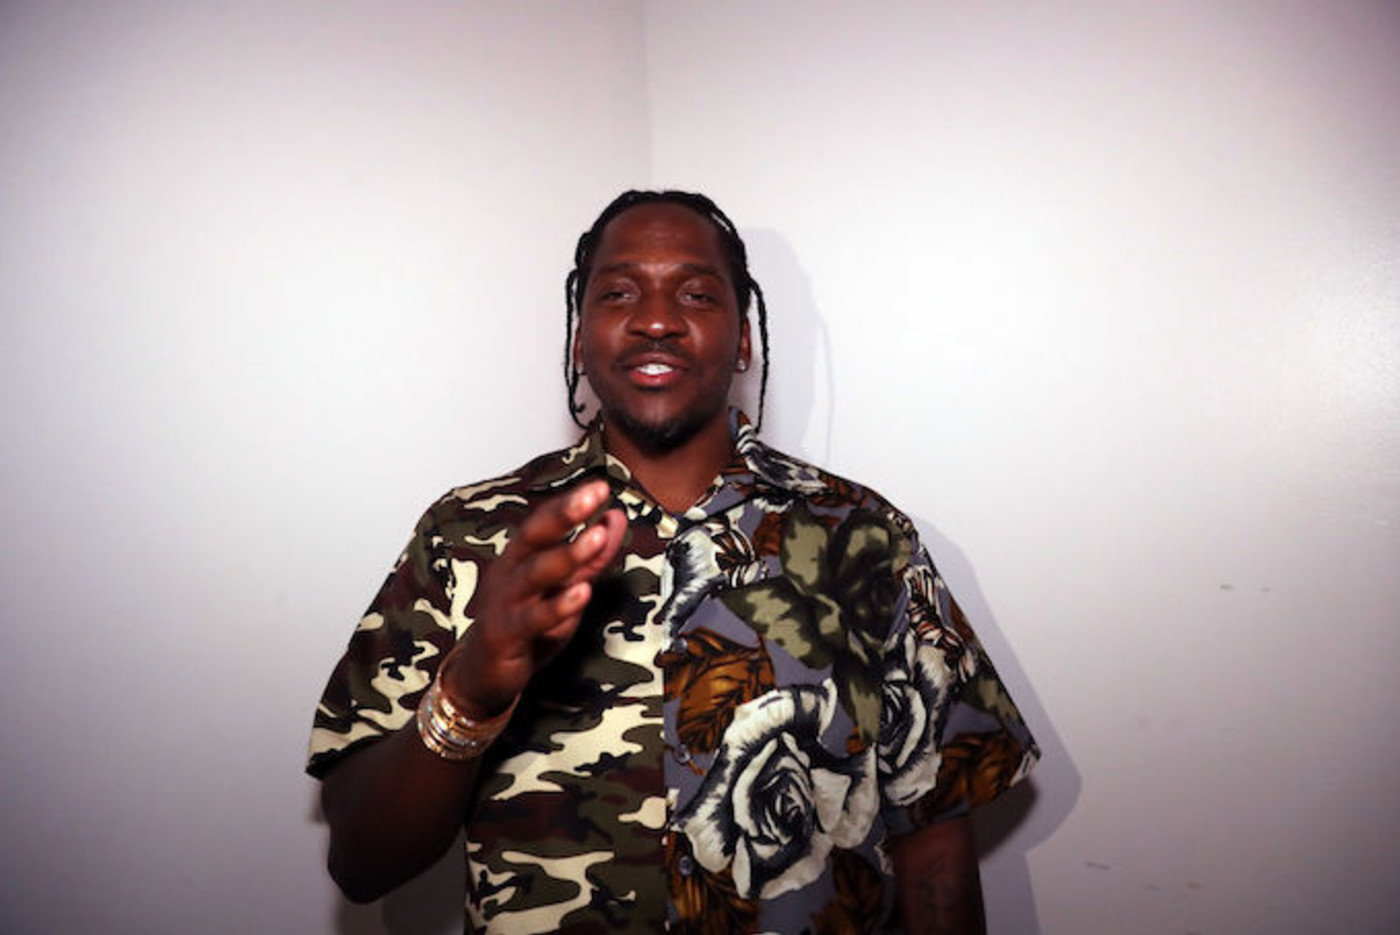 This is a picture of Pusha.